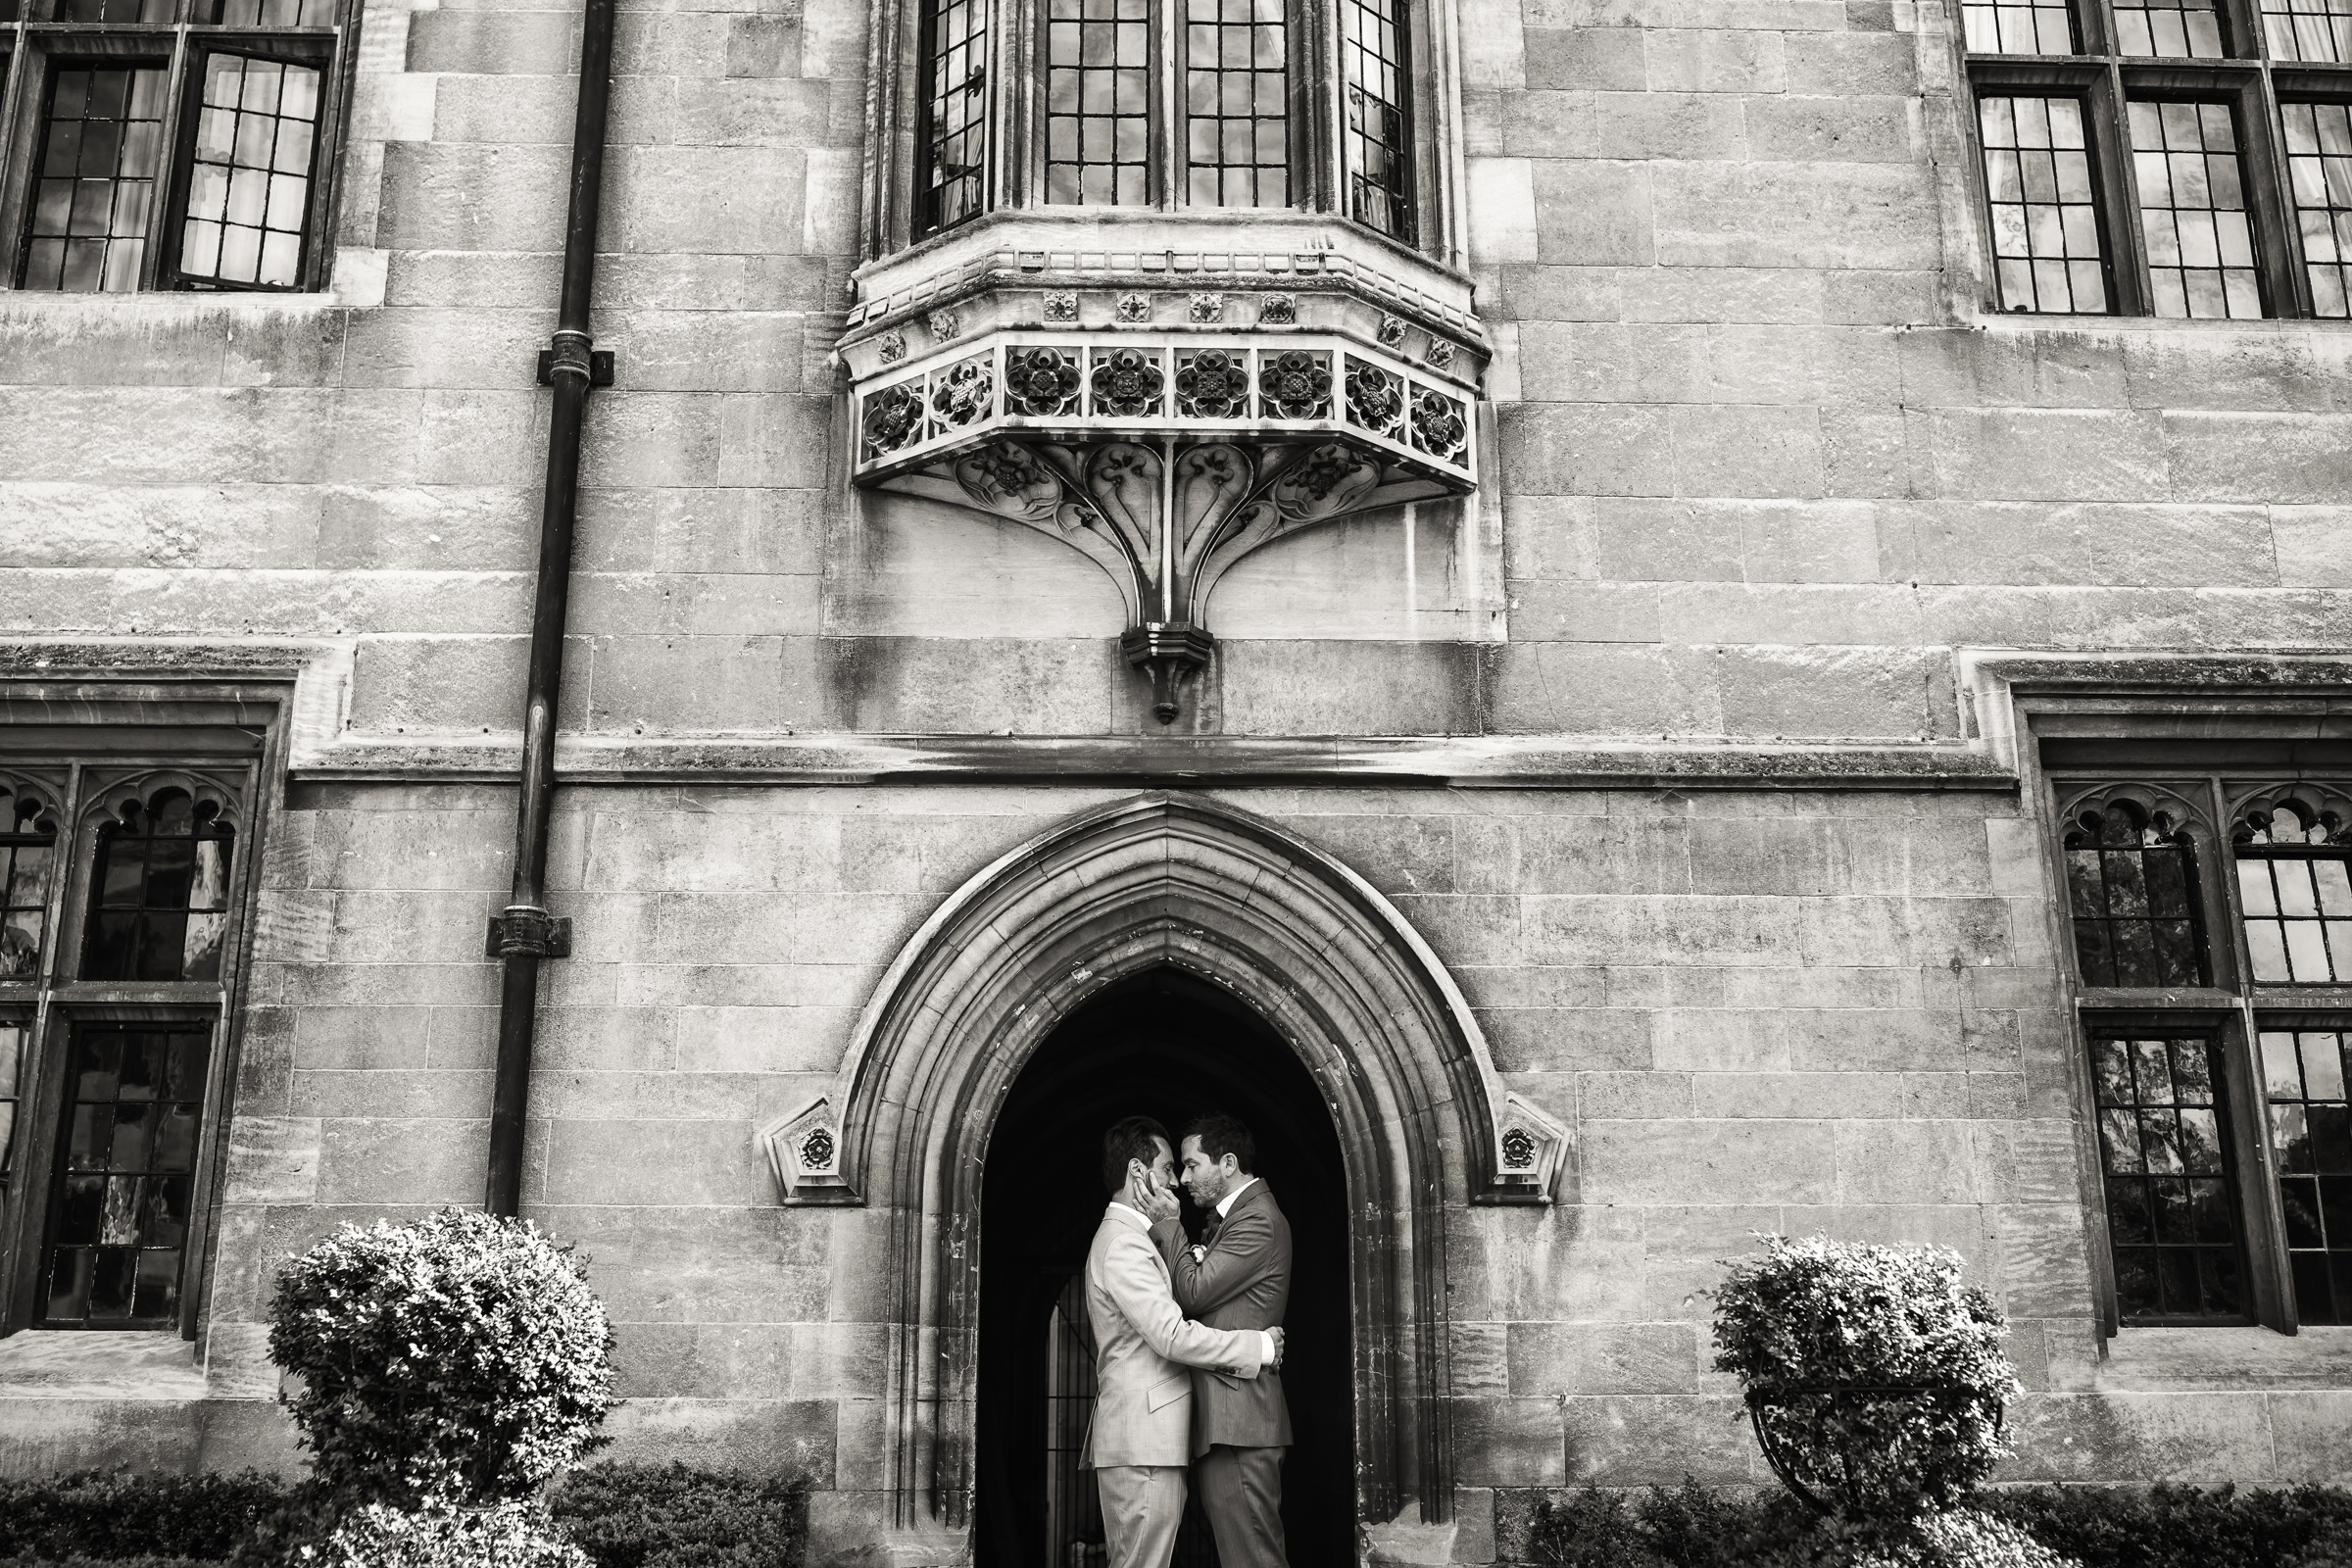 kings college cambridge university gay same sex wedding hertfordshire wedding photographer rafe abrook photography-1116.jpg